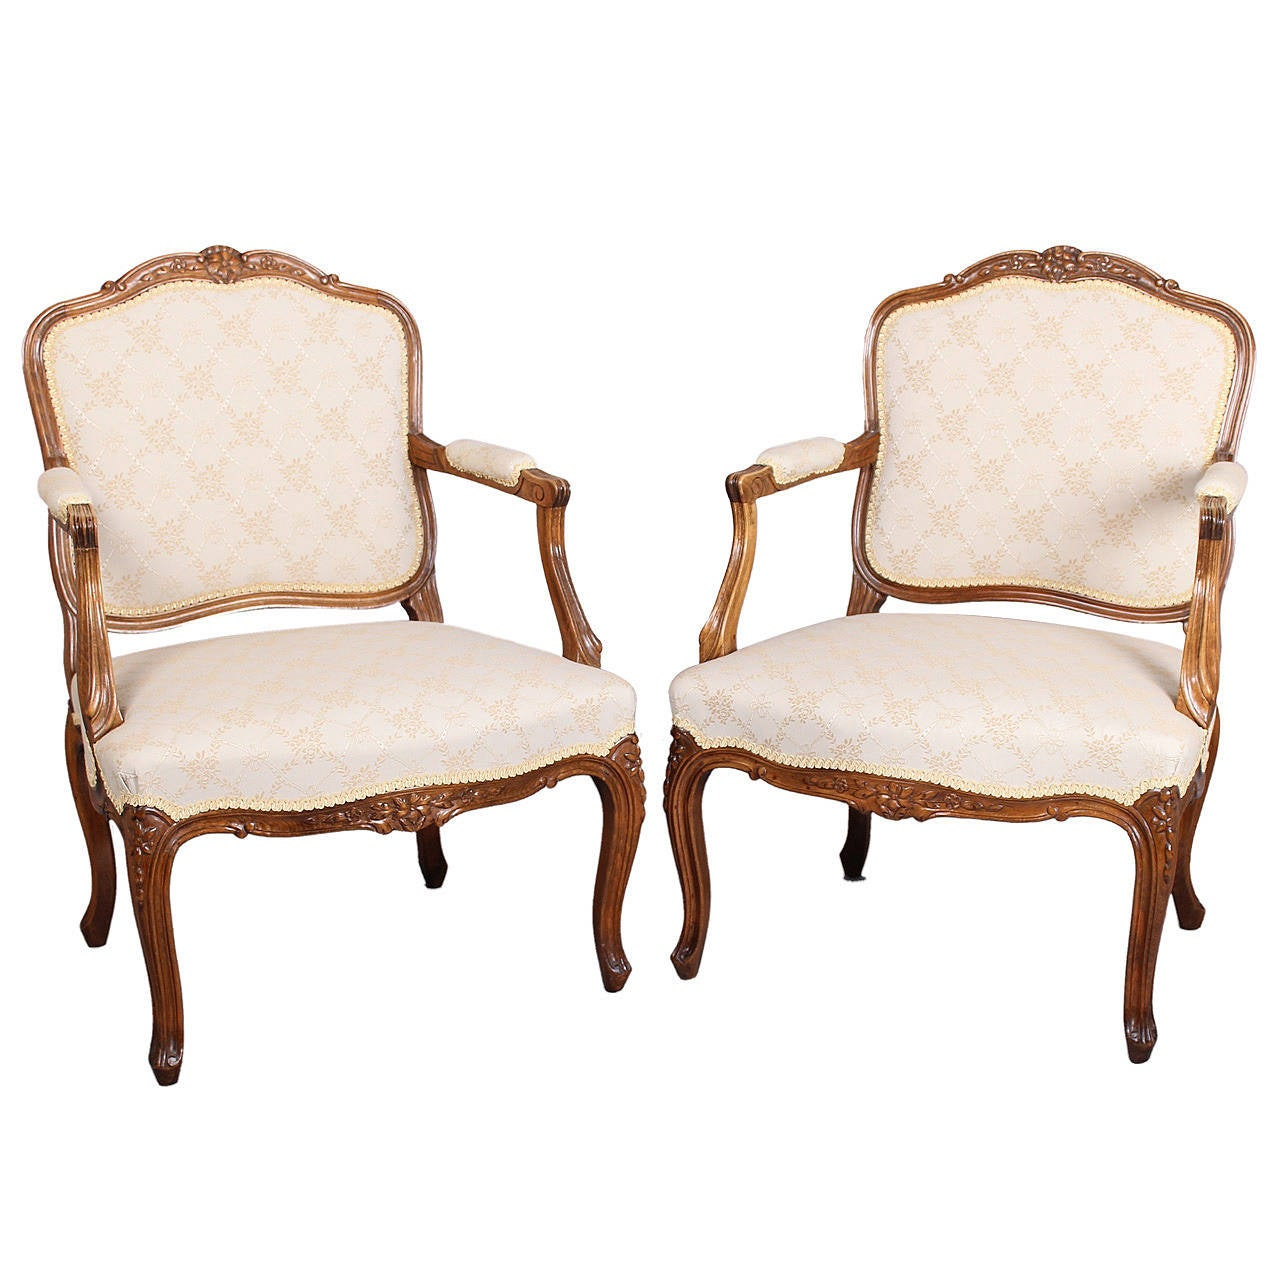 pair of danish beech fauteuils in the louis xv manner at 1stdibs. Black Bedroom Furniture Sets. Home Design Ideas